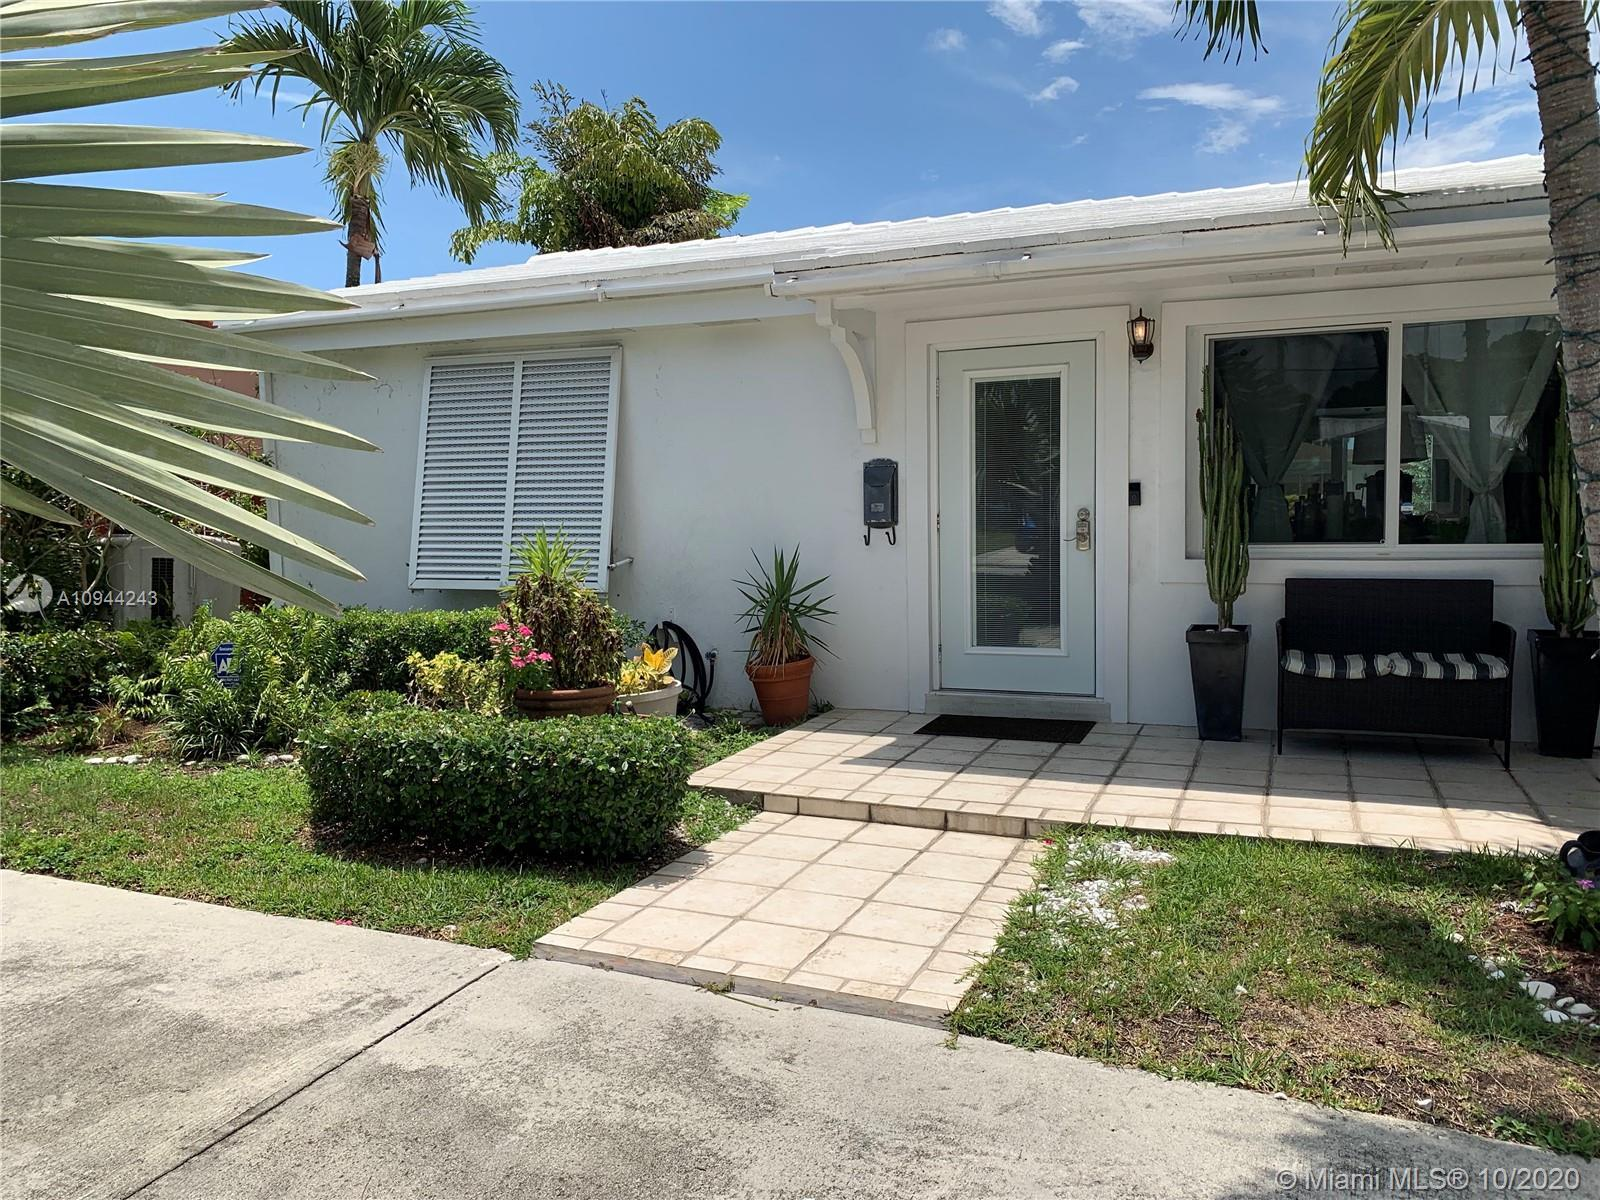 NICE RENOVATED HOUSE IN DESIRABLE CITRUS ISLE.  3 BEDROOMS, 1 CAN BE USED AS AN OFFICE, 2 BATHROOMS,